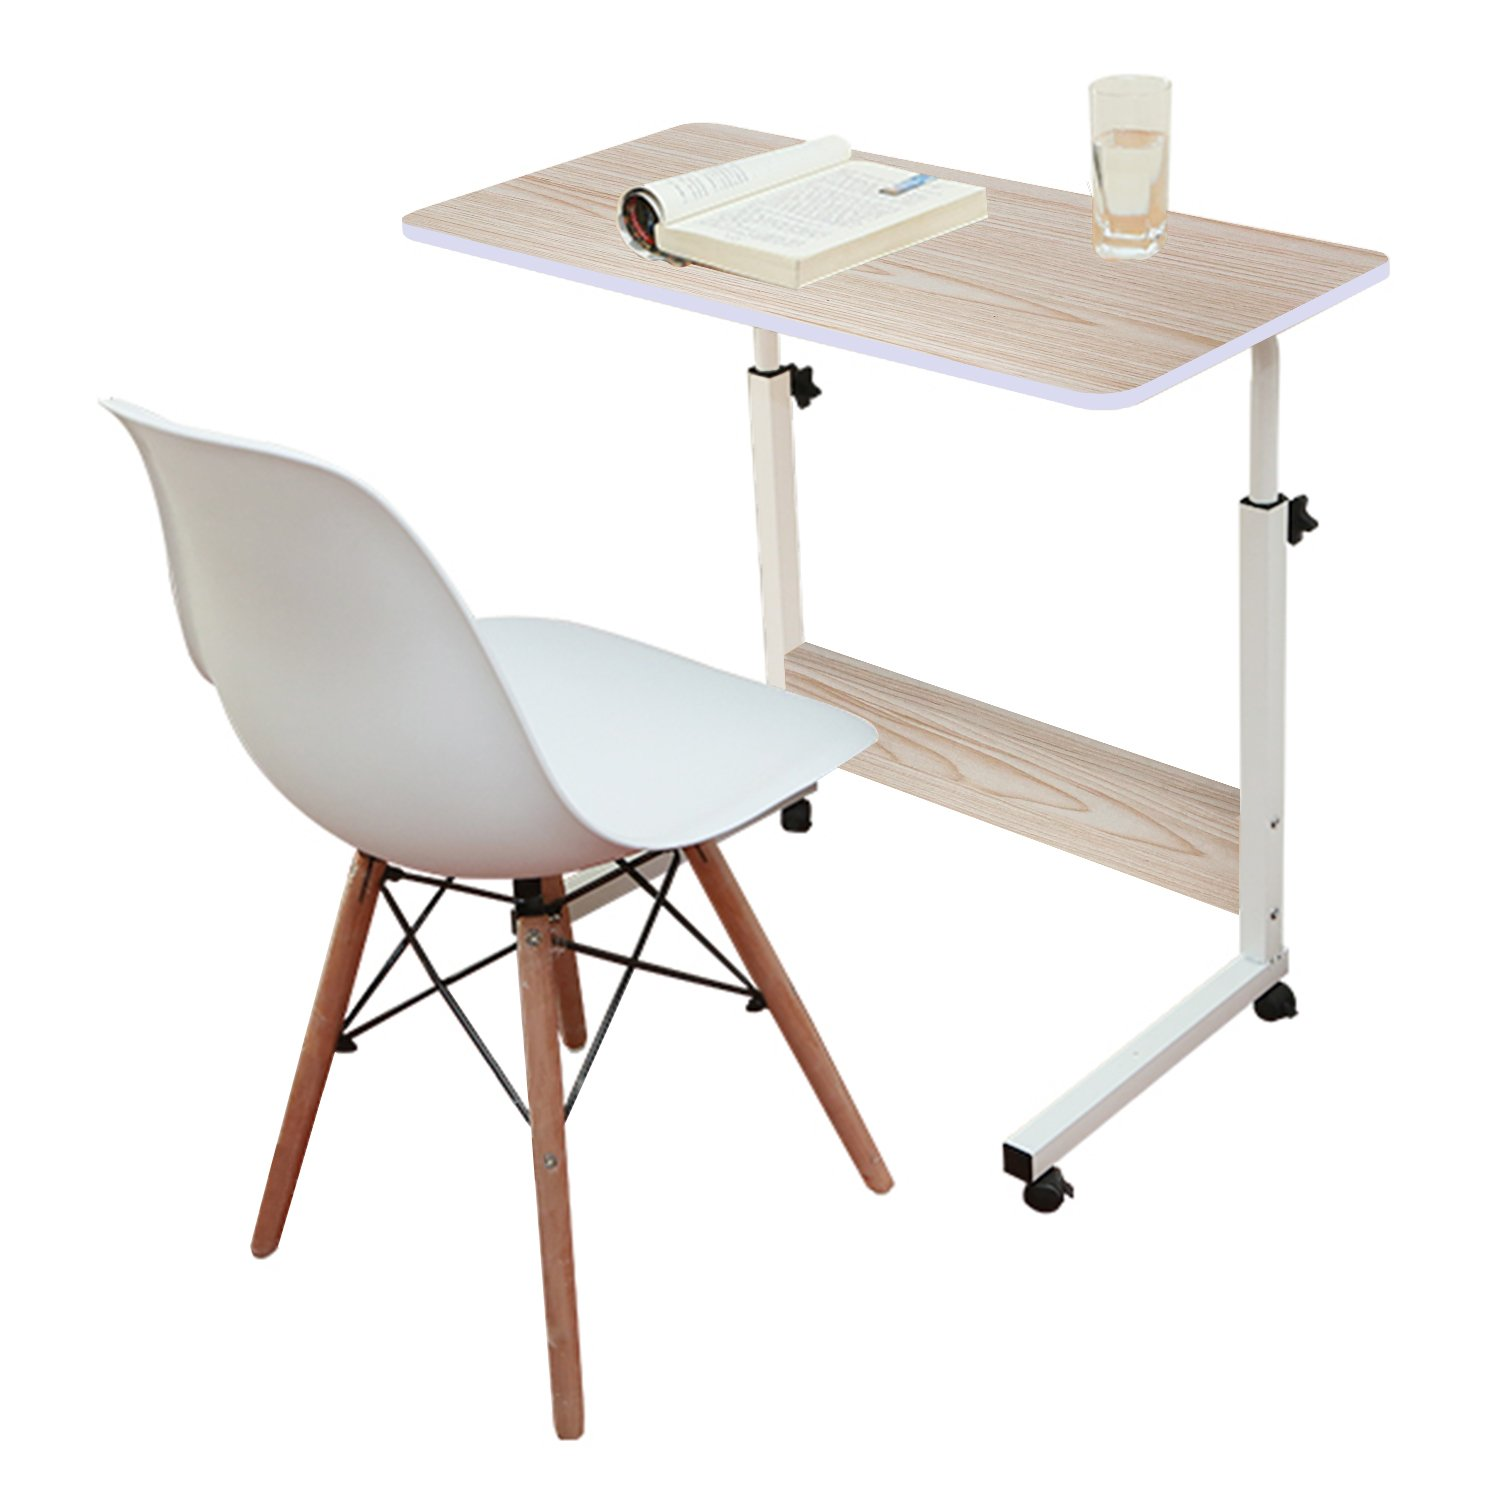 Jerry & Maggie - Adjustable Height Desk Laptop Desk Office Home Movable Table Bedside Lapdesk With 4 Wheels Flexible Wooden Stand Desk Cart Tray Side Table - White Wood Tone